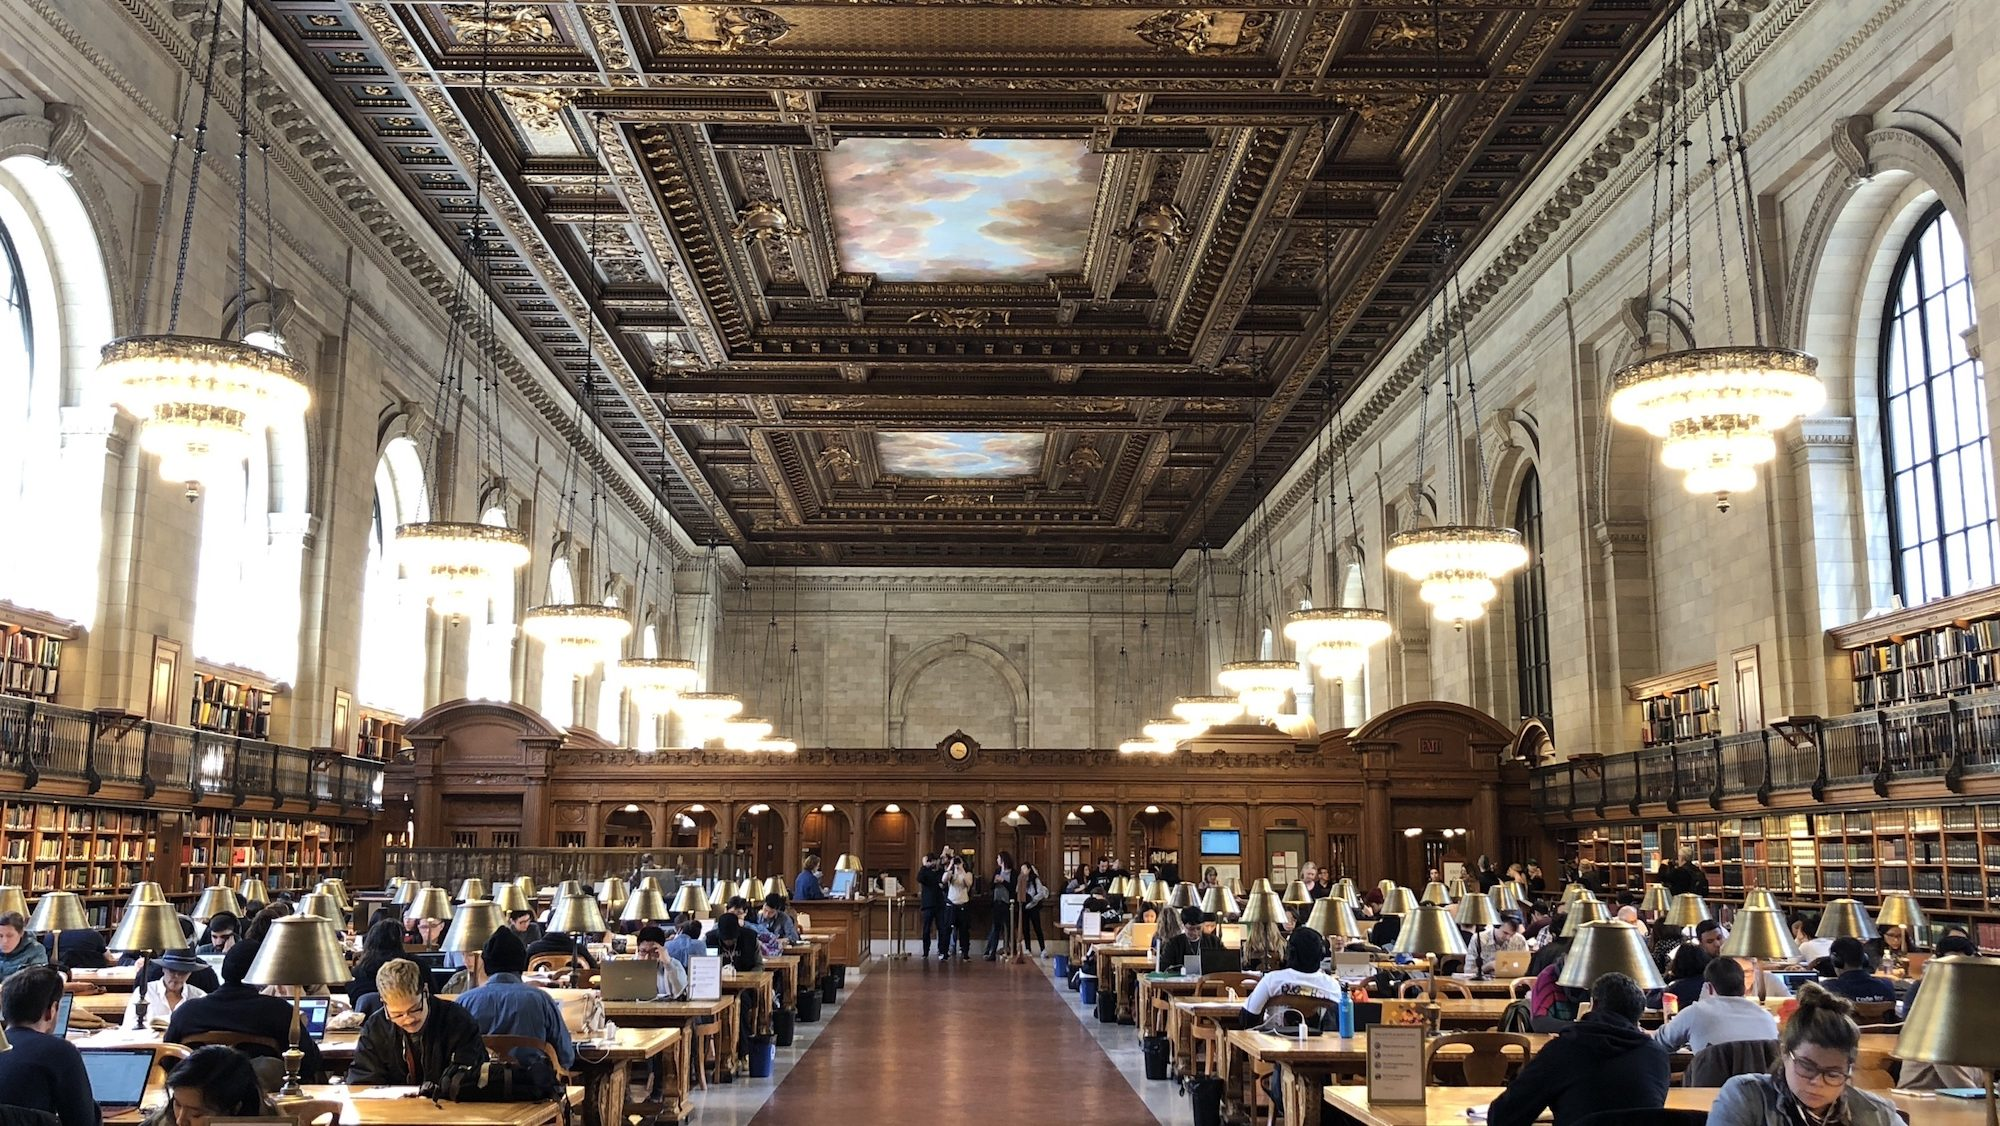 NYPL is a place to go to and learn from others